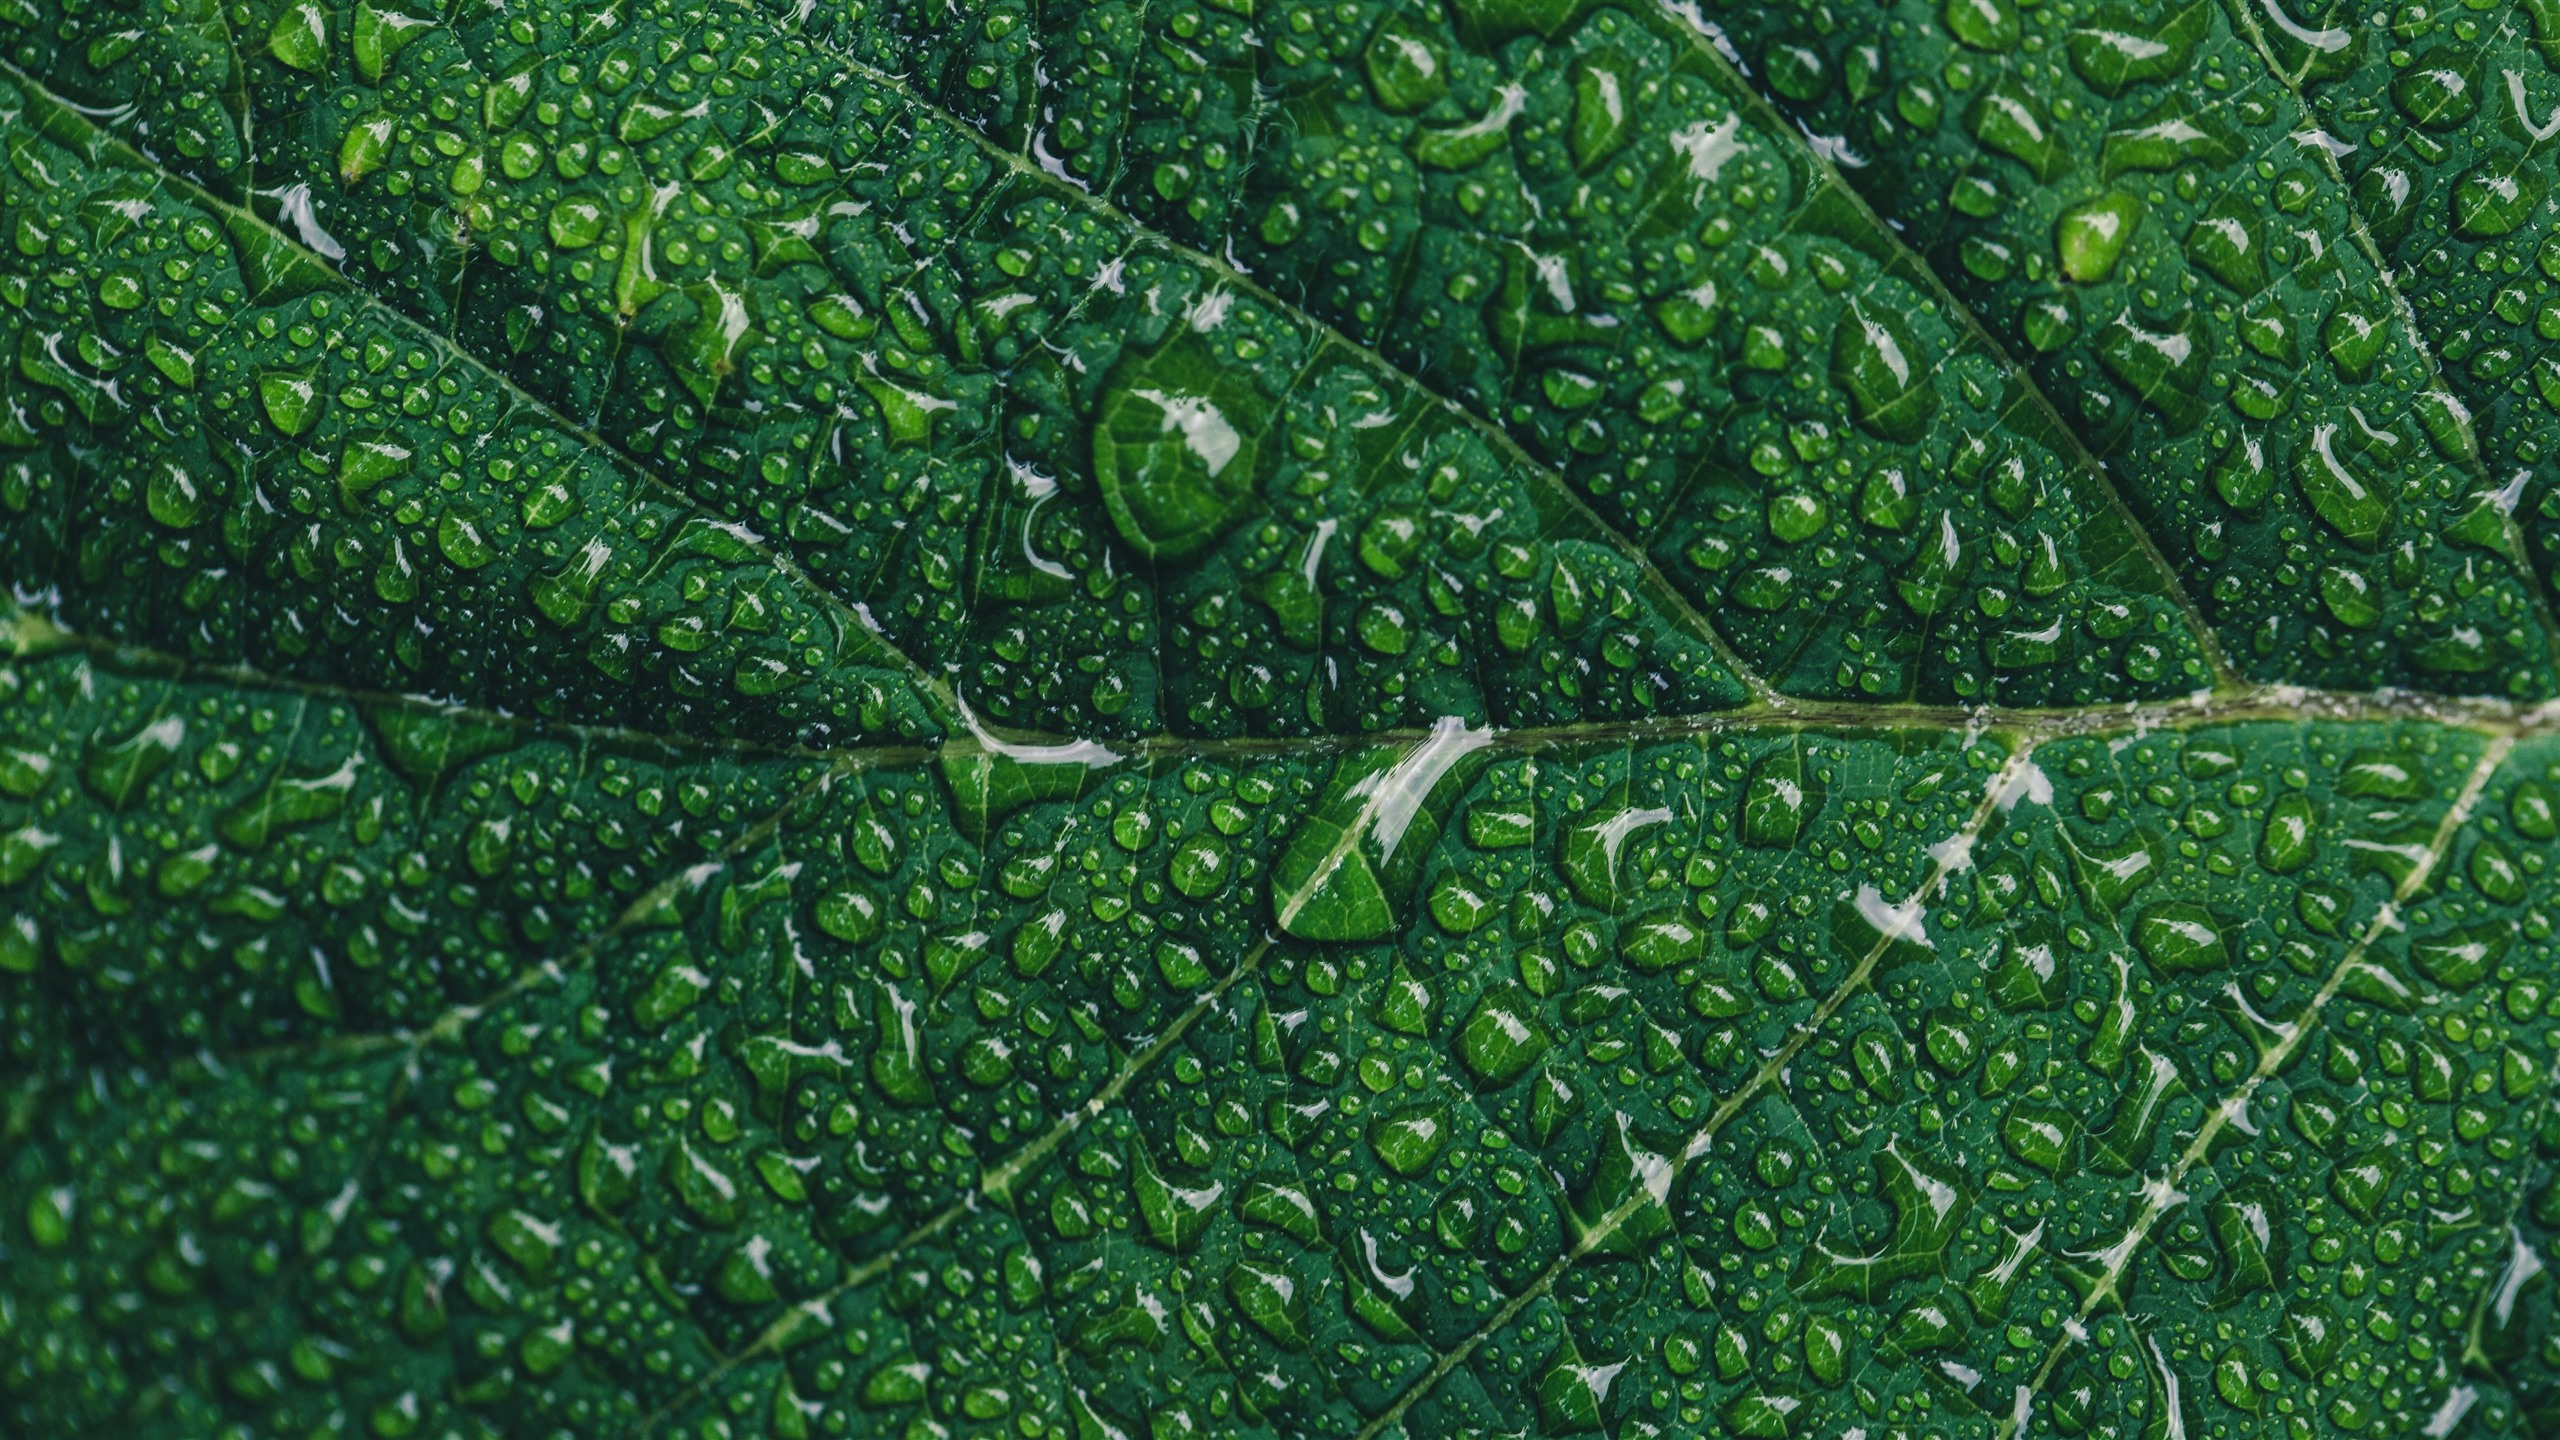 Green Leaf Close Up Water Droplets Texture 1242x2688